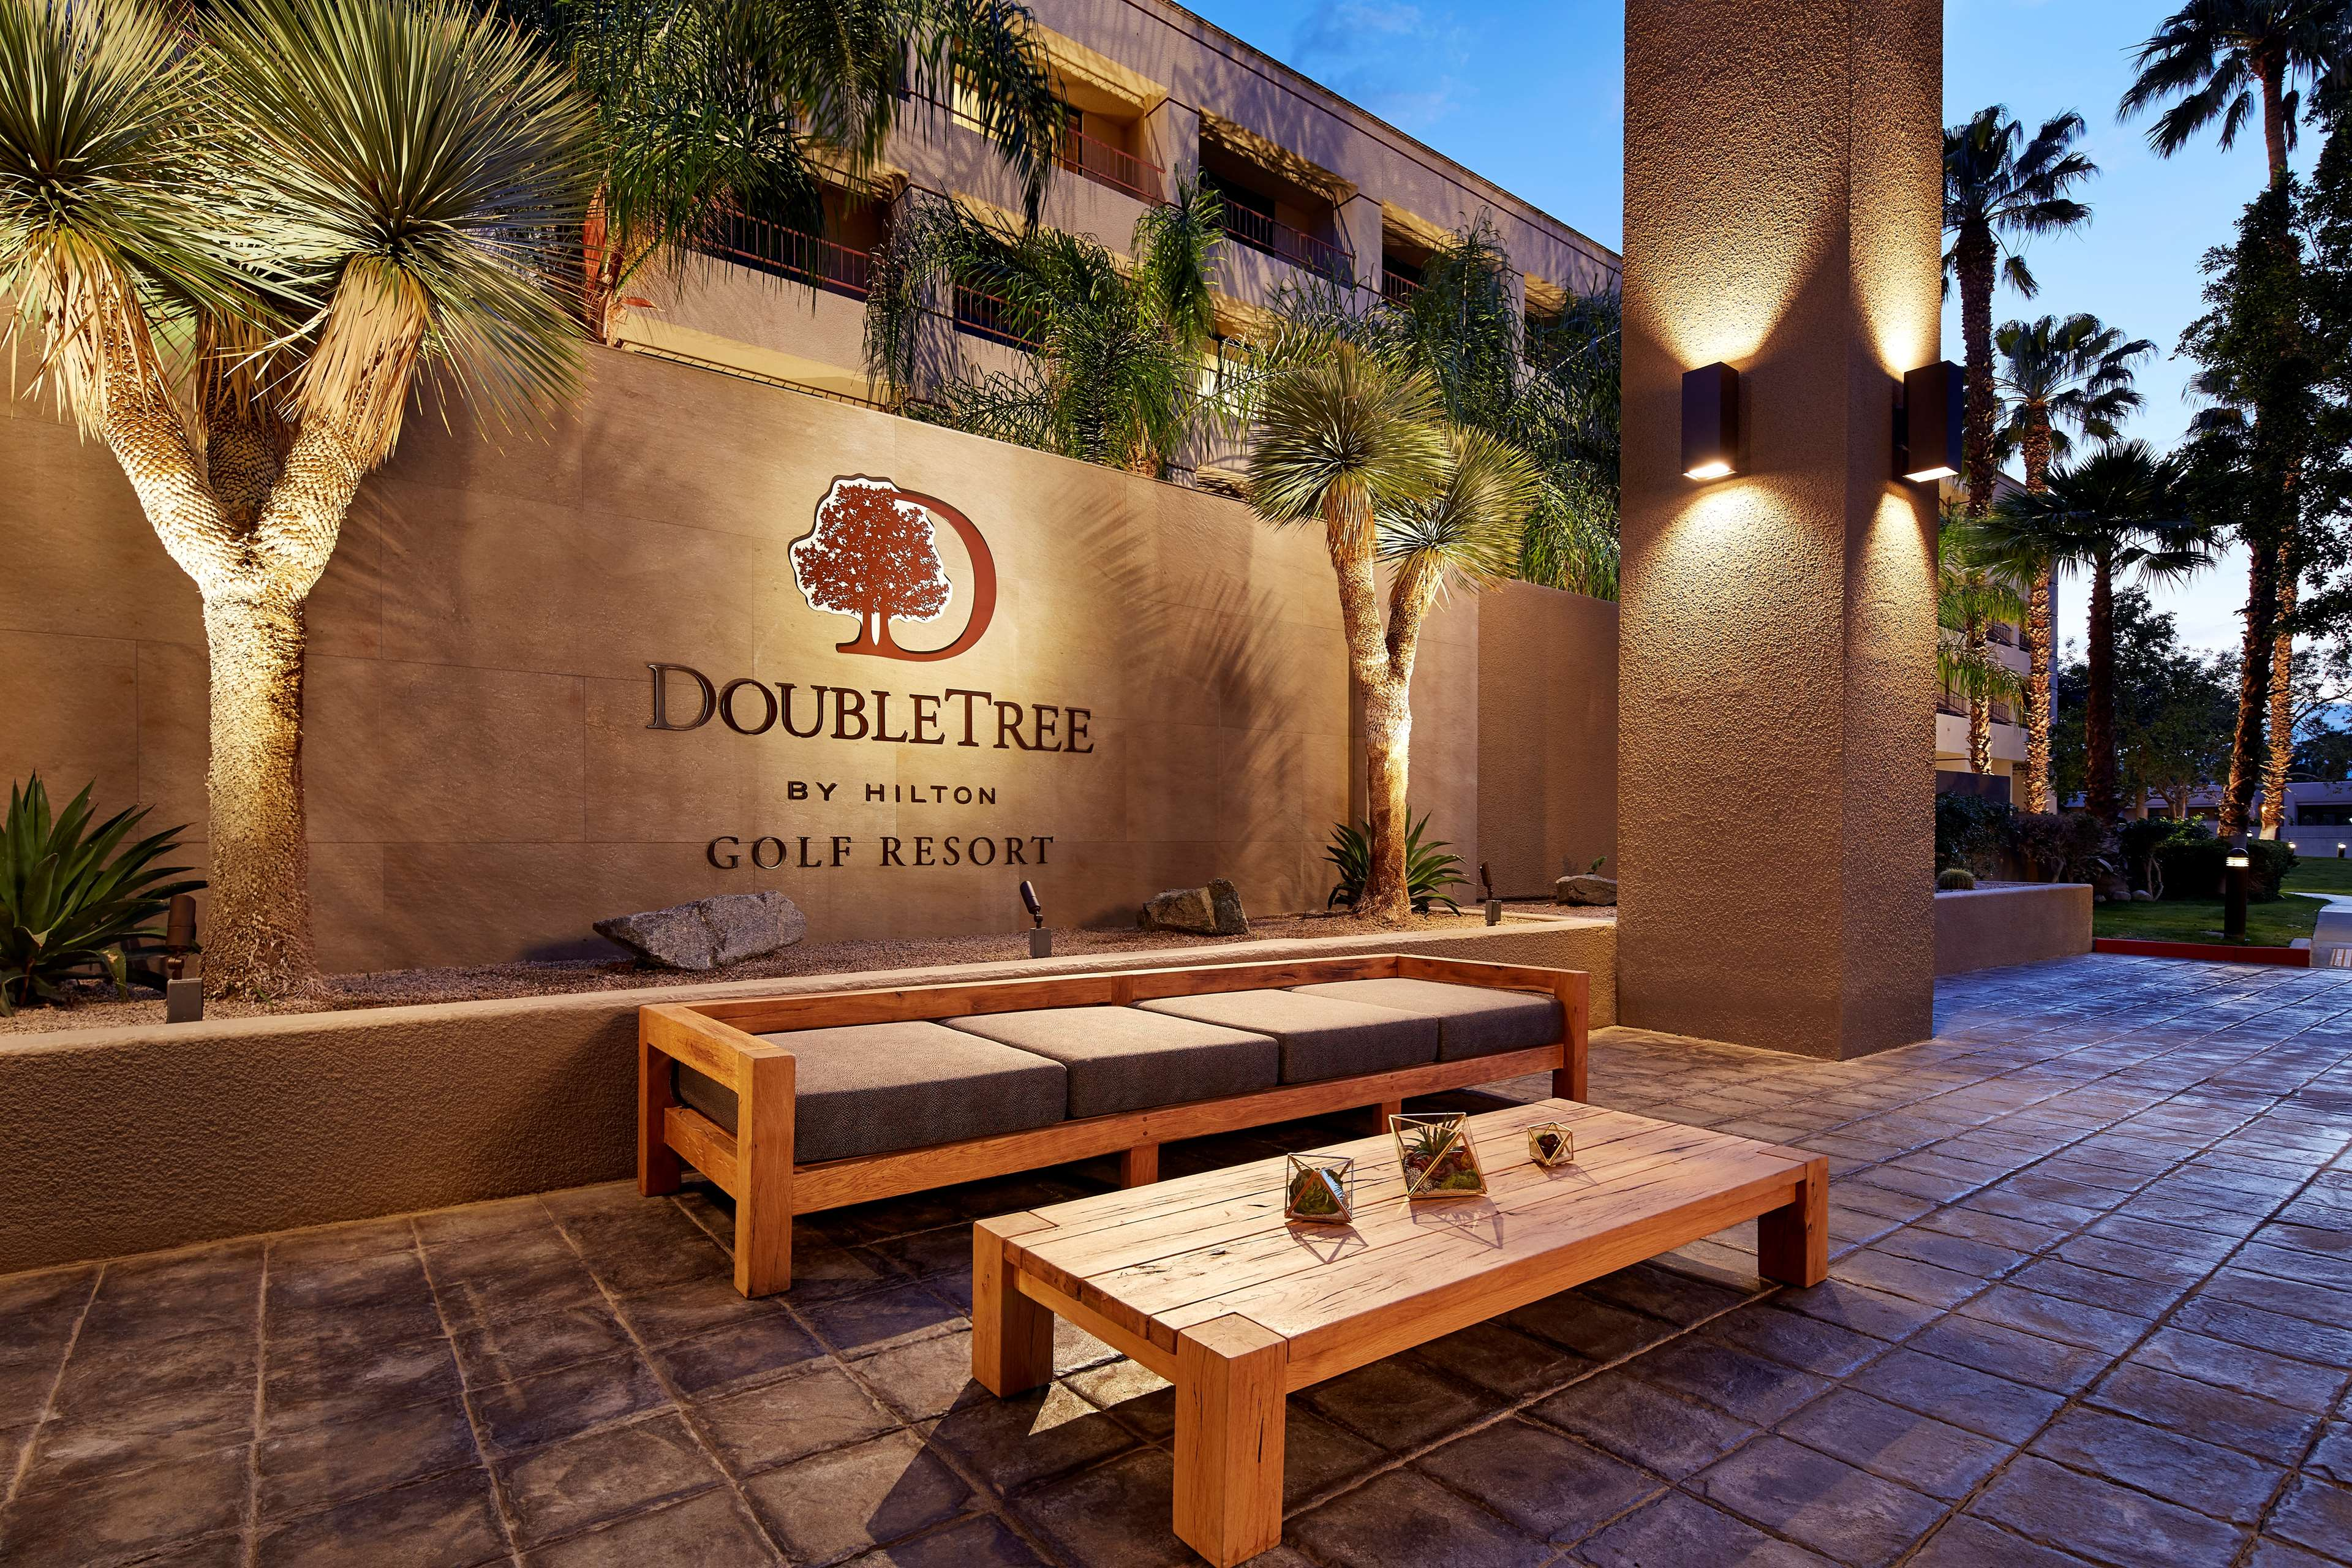 DoubleTree by Hilton Hotel Golf Resort Palm Springs image 4